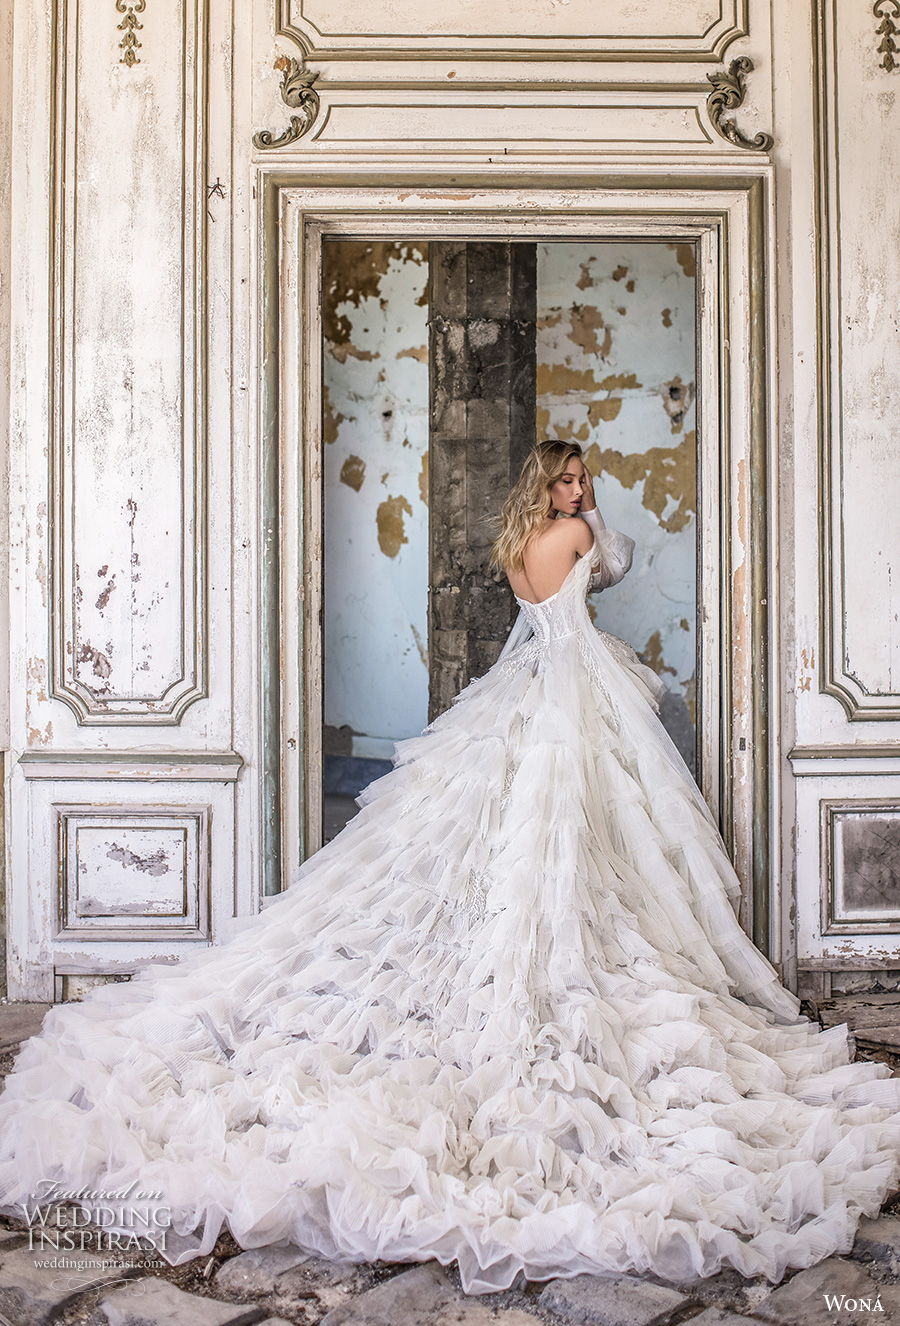 wona 2020 couture bridal long bishop sleeves off the shoulder sweetheart neckline heavily embellished bodice tiered skirt ball gown a  line wedding dress mid back royal train (14) bv